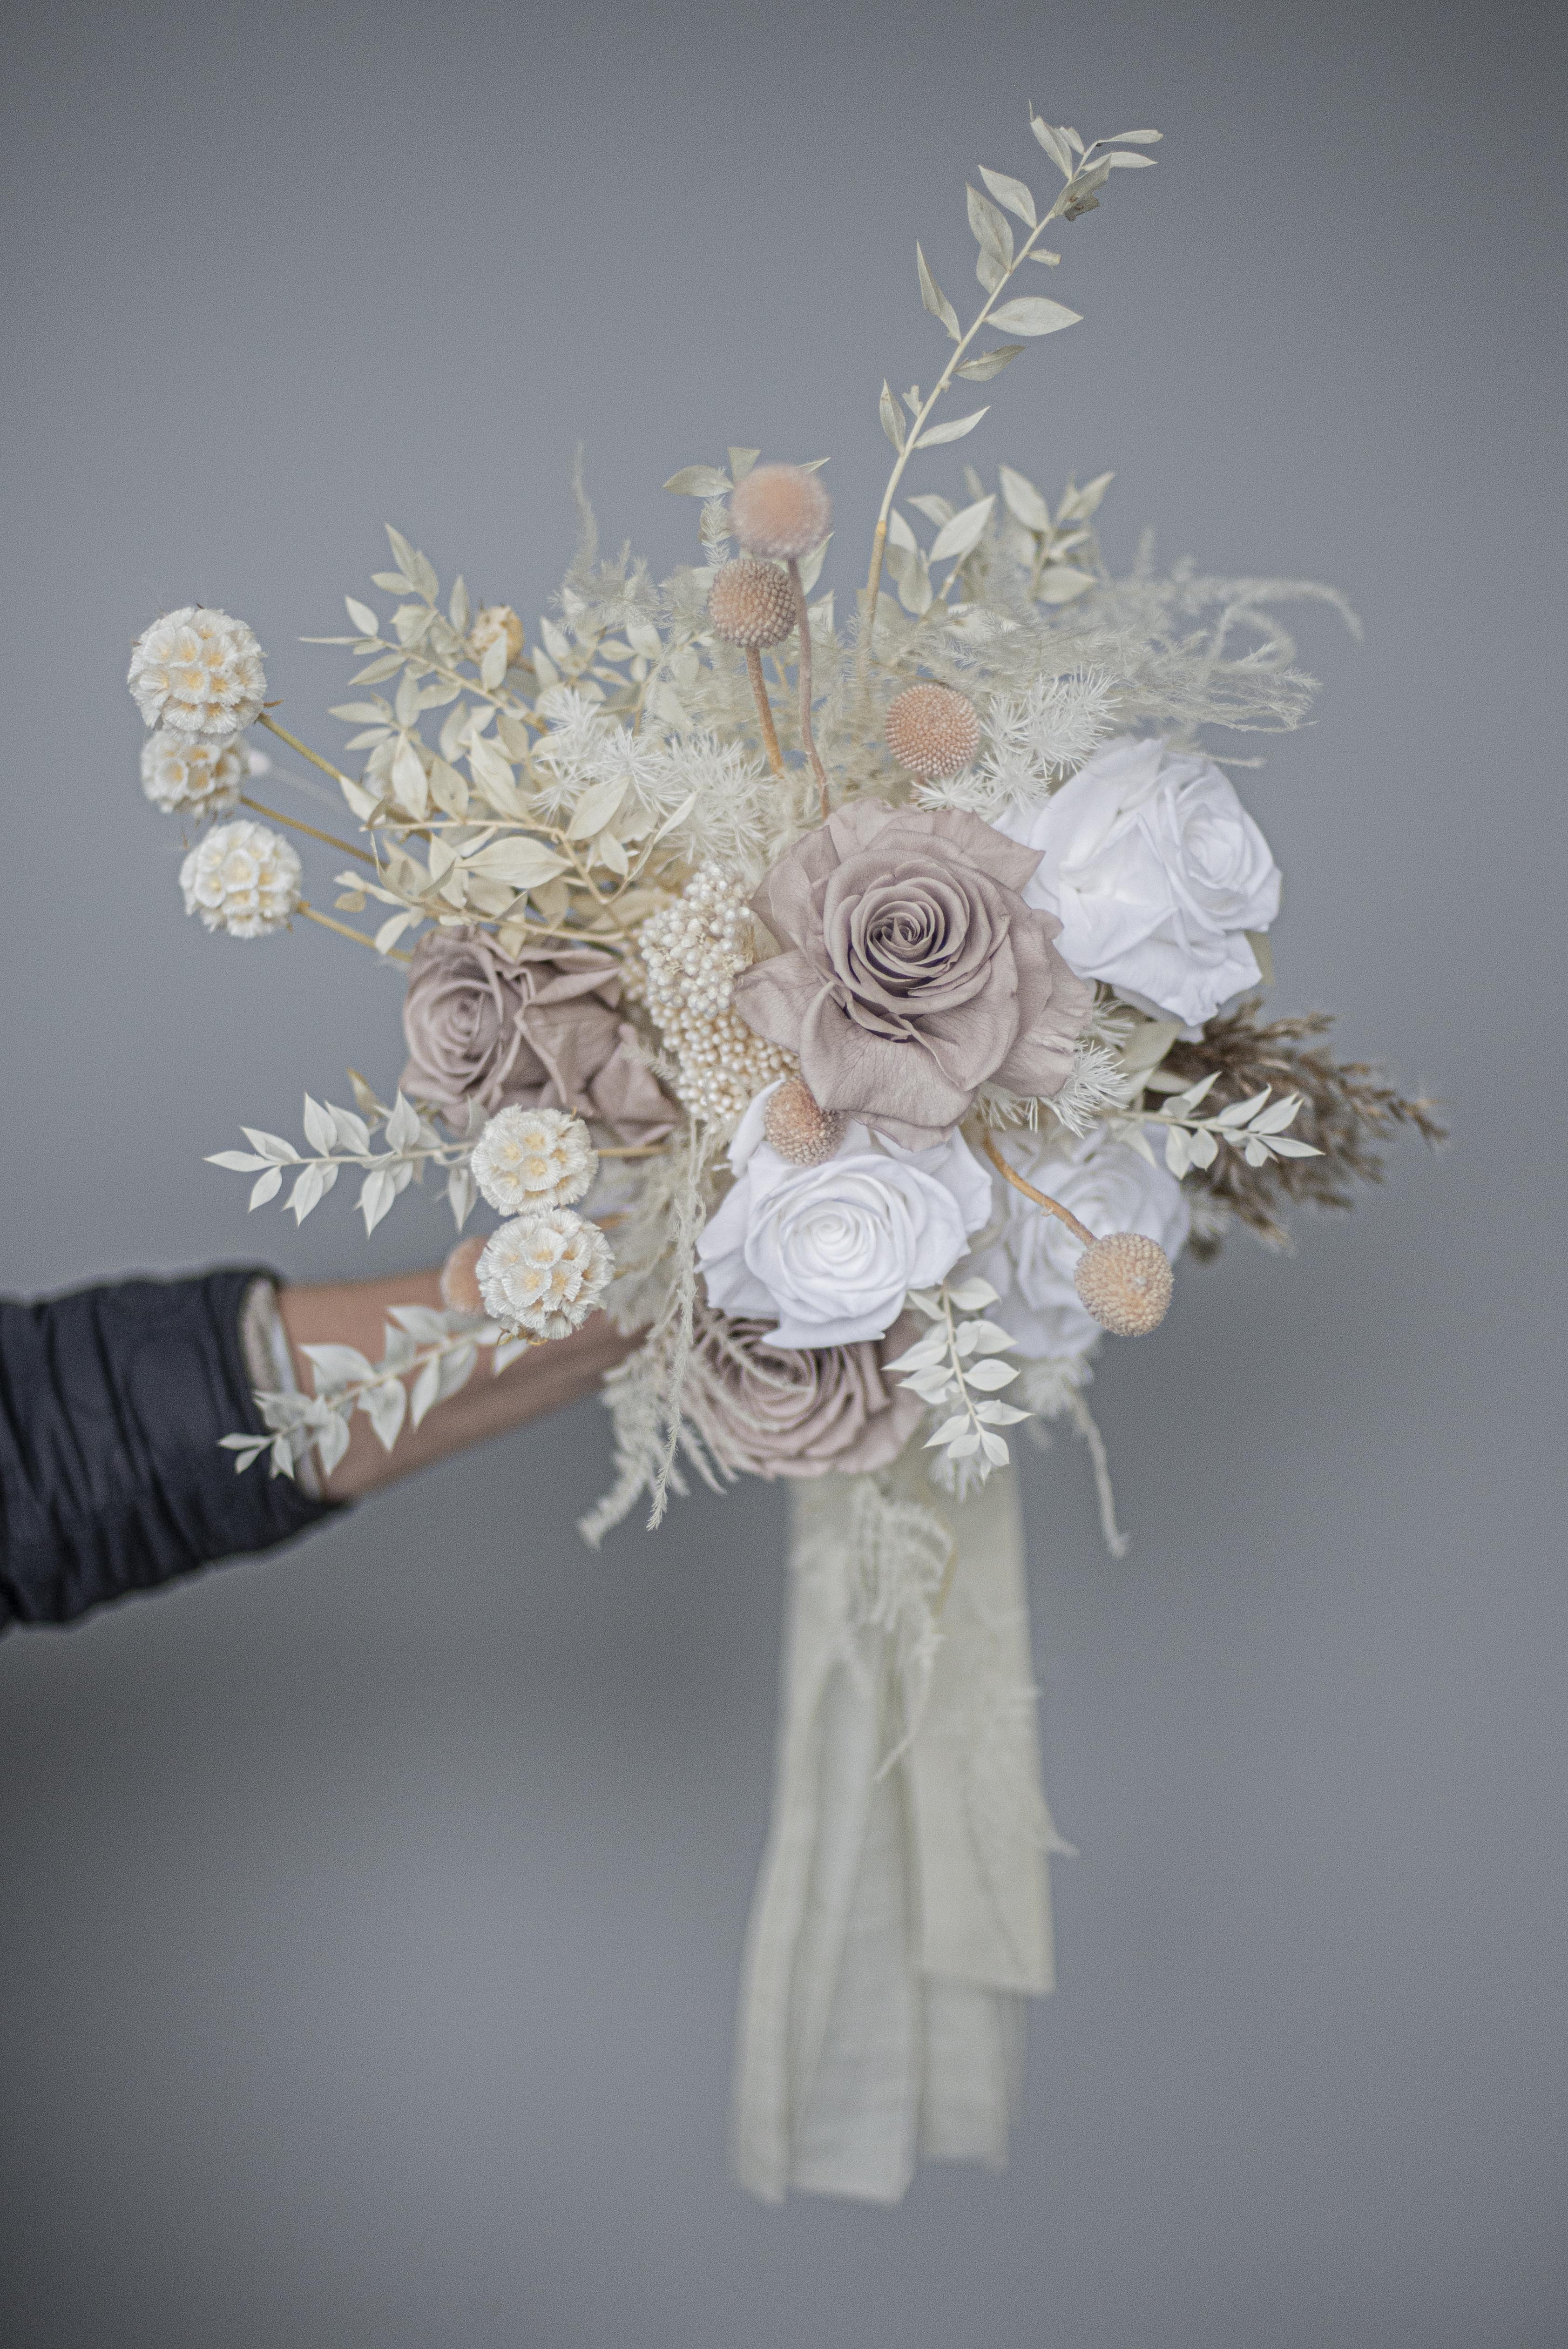 Dried & preserved floral brides bouquet